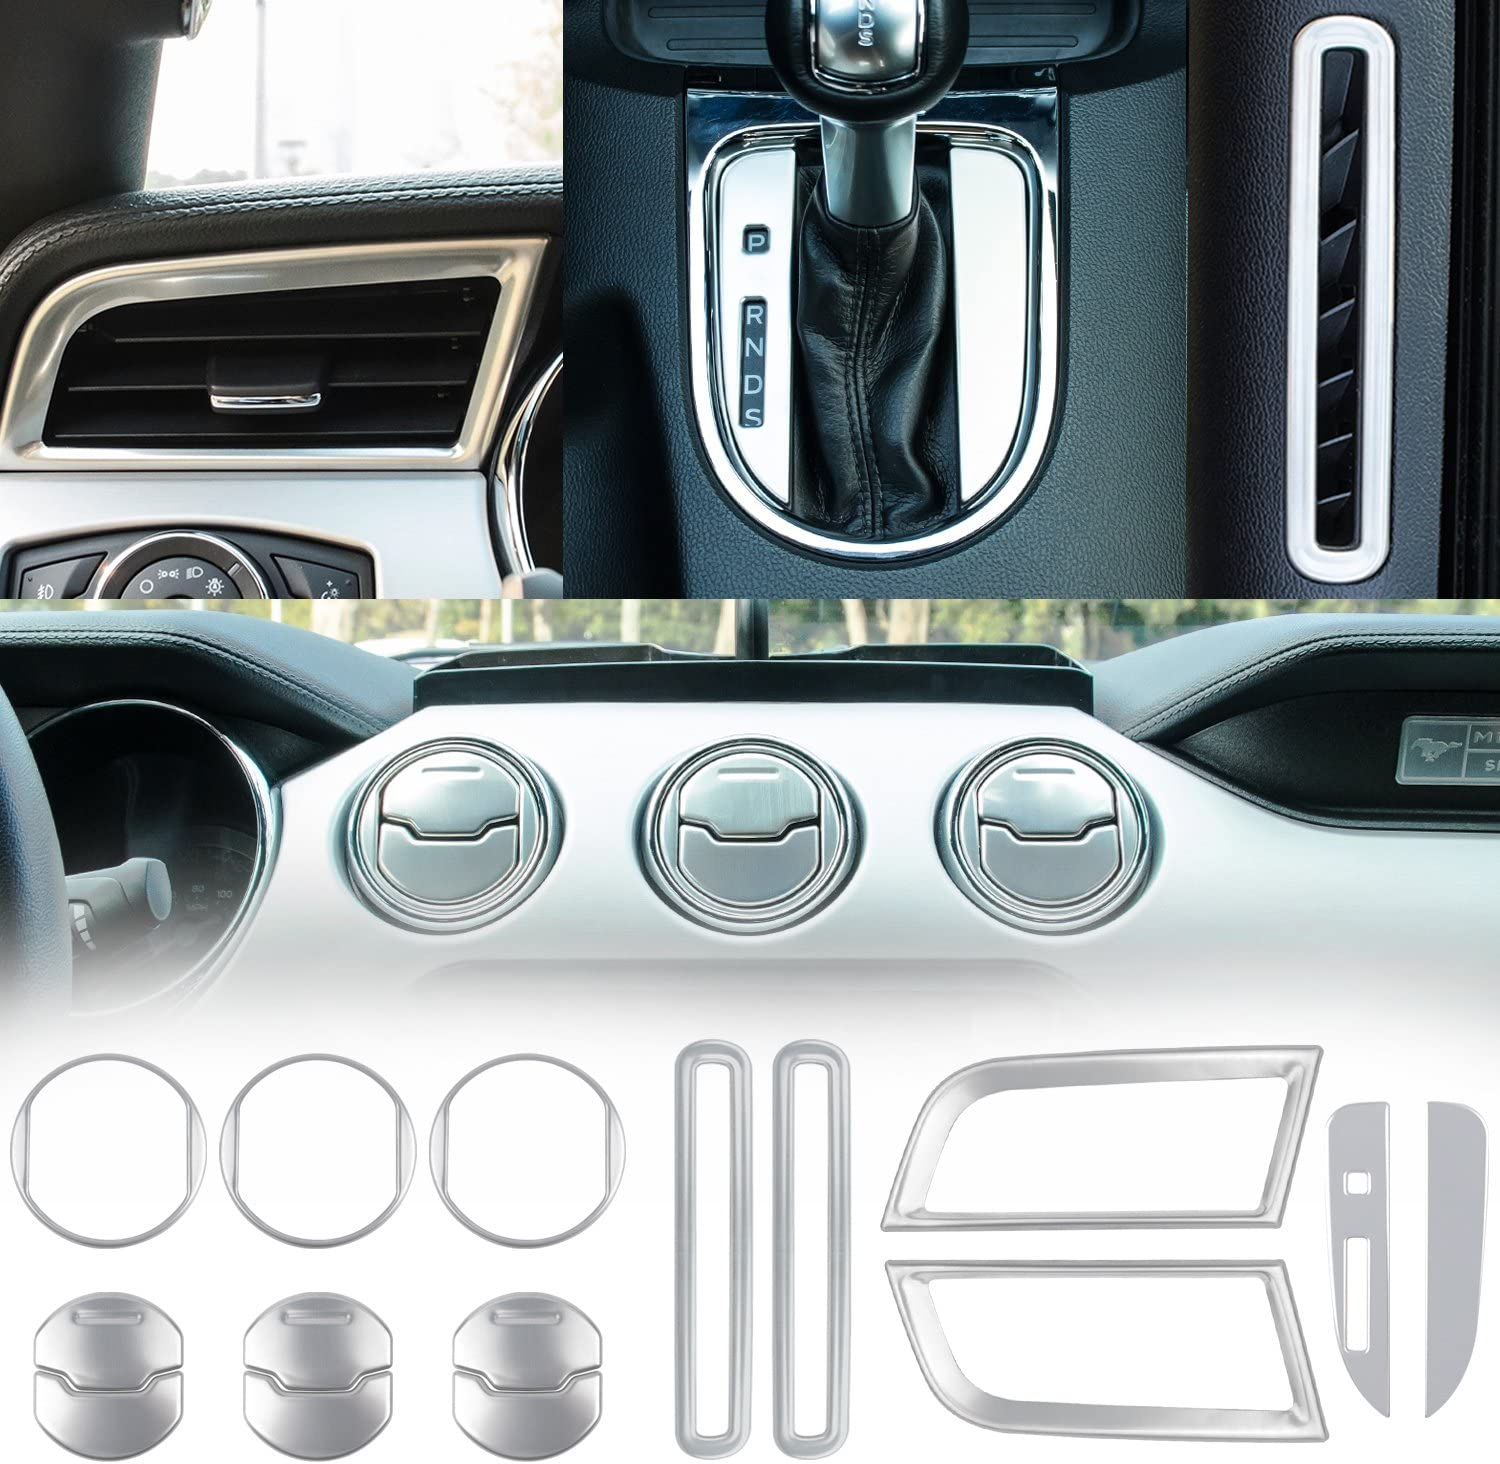 BLUE 15PCS For 2015-2018 Ford Mustang Interior Accessories Decoration Console Central /& Car Door /& Dash Board Side Air Conditioner Outlet Vent Shift Gear Box Switch Button Cover Trim